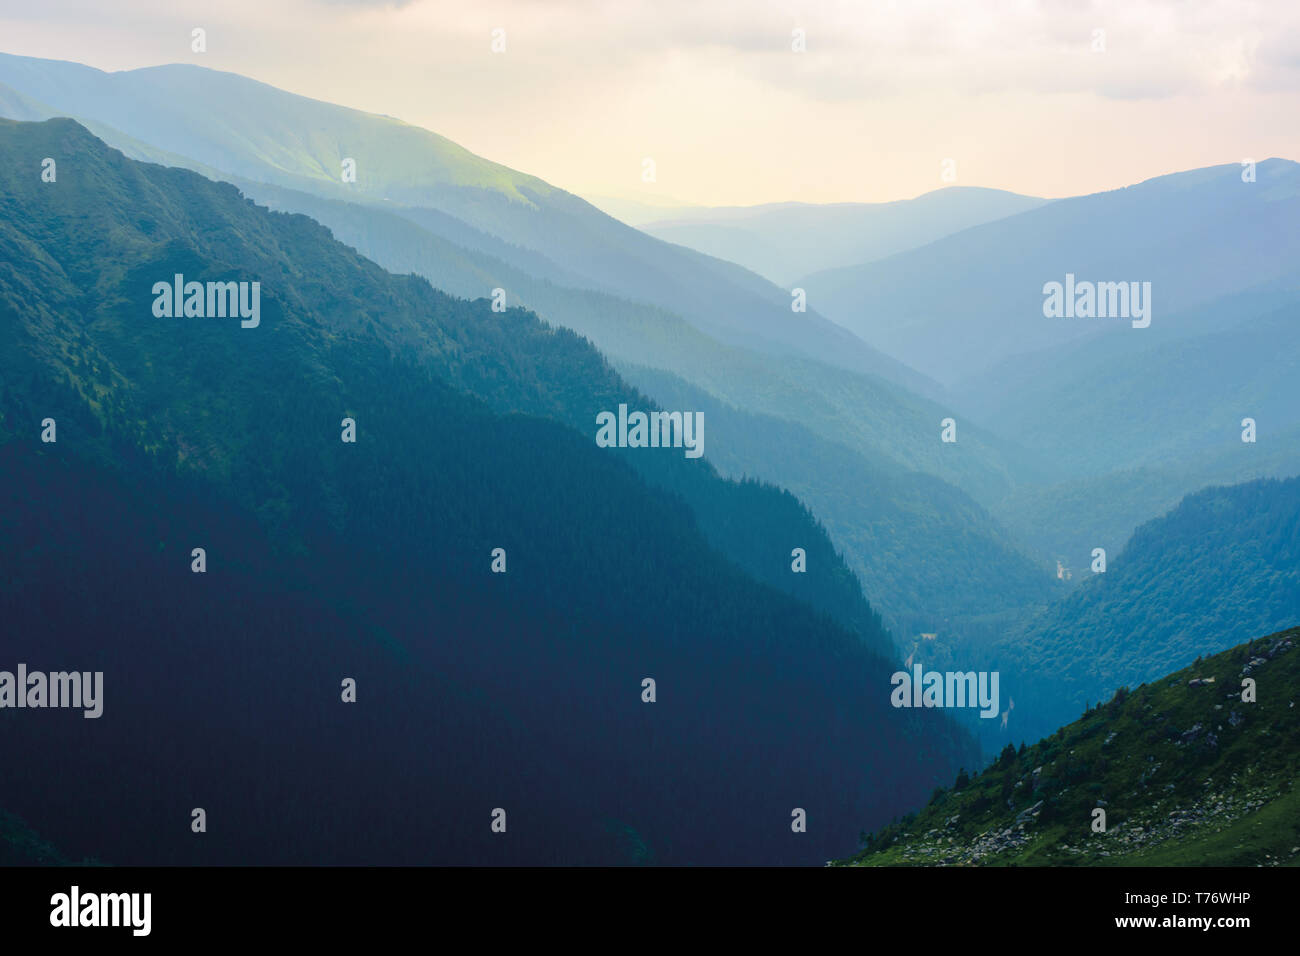 mountain ridge on a cloudy day. beautiful nature summer scenery in Fagaras mountains, Romania. concept of outdoor activity in any weather condition. l - Stock Image